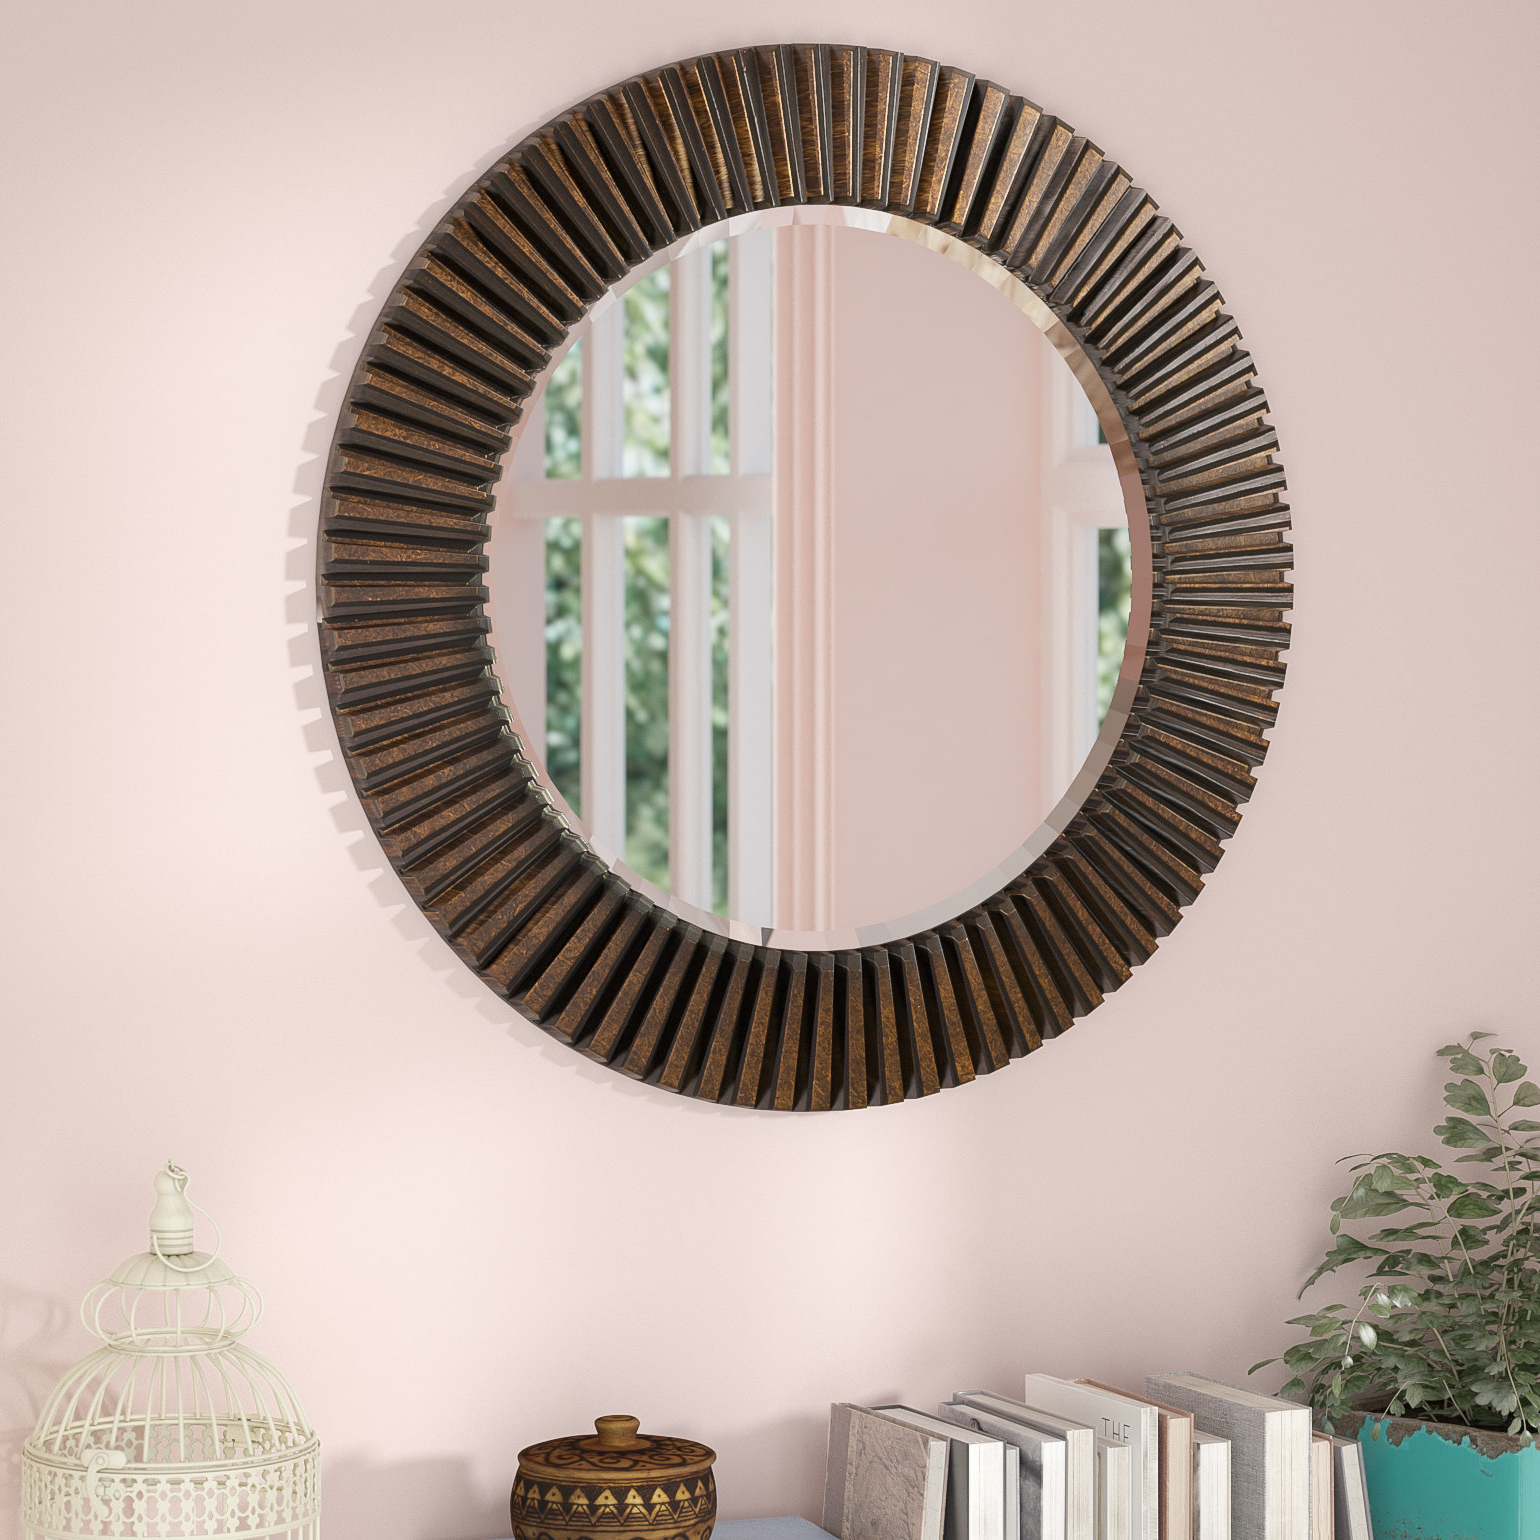 Most Recent Round Eclectic Accent Mirror Within Bracelet Traditional Accent Mirrors (View 6 of 20)